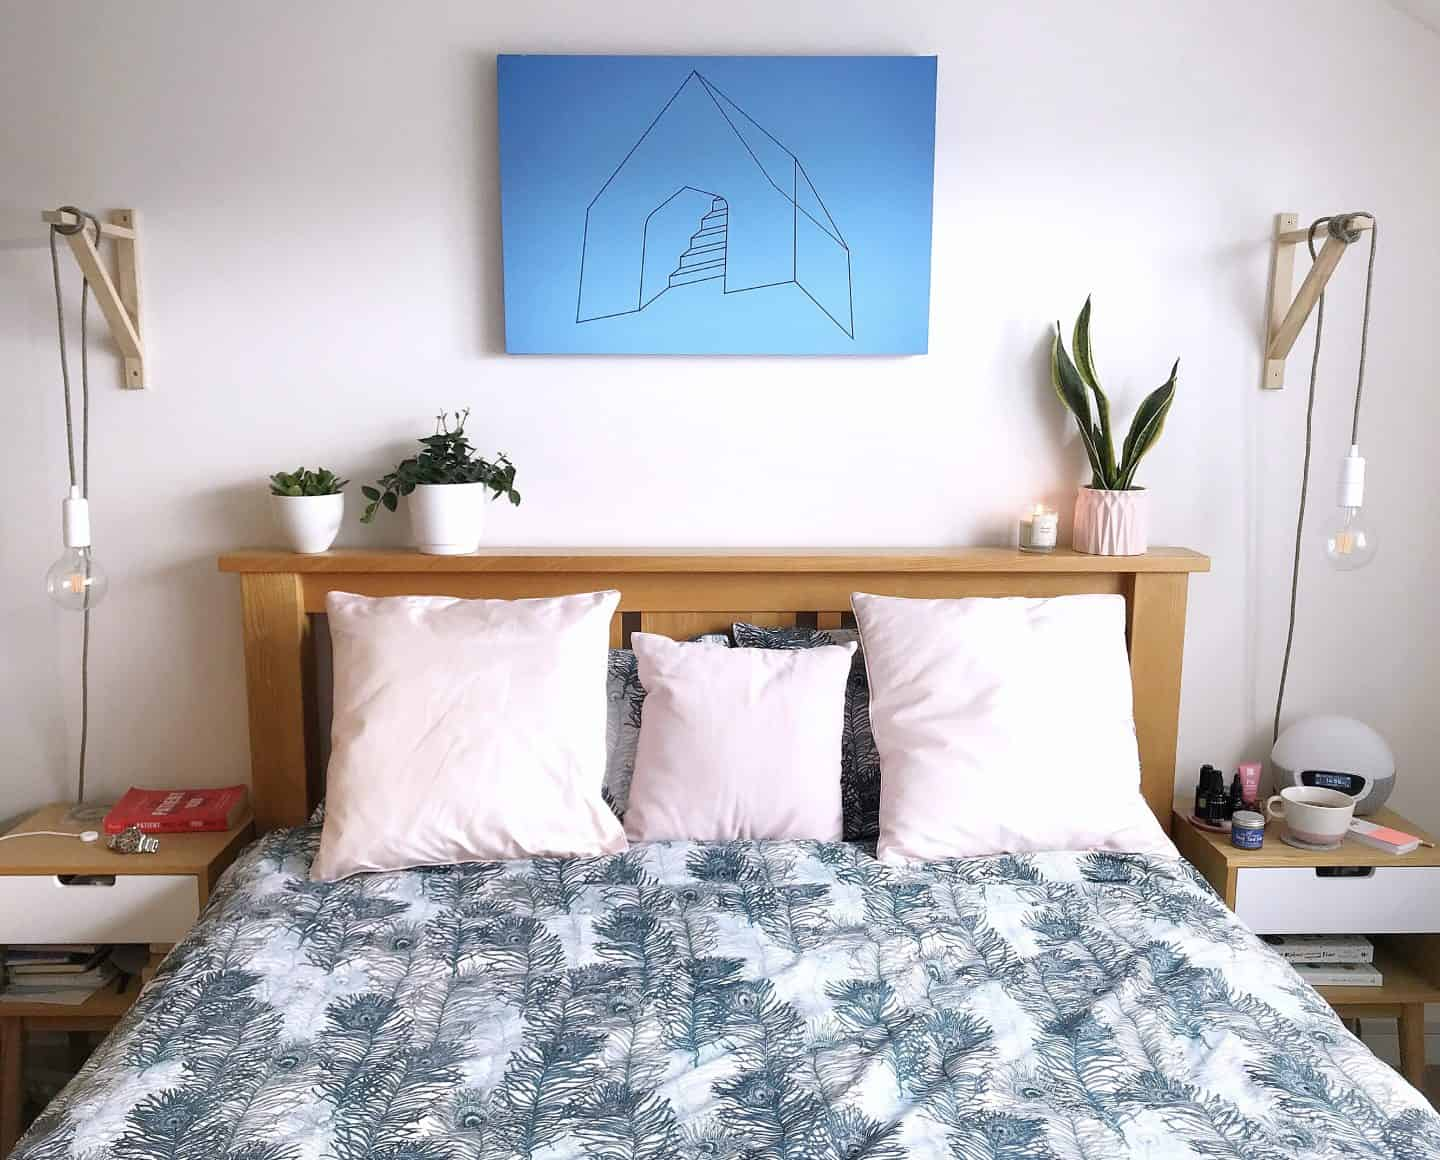 Deyoungs Peacock Printed Duvet set with pink scatter cushions